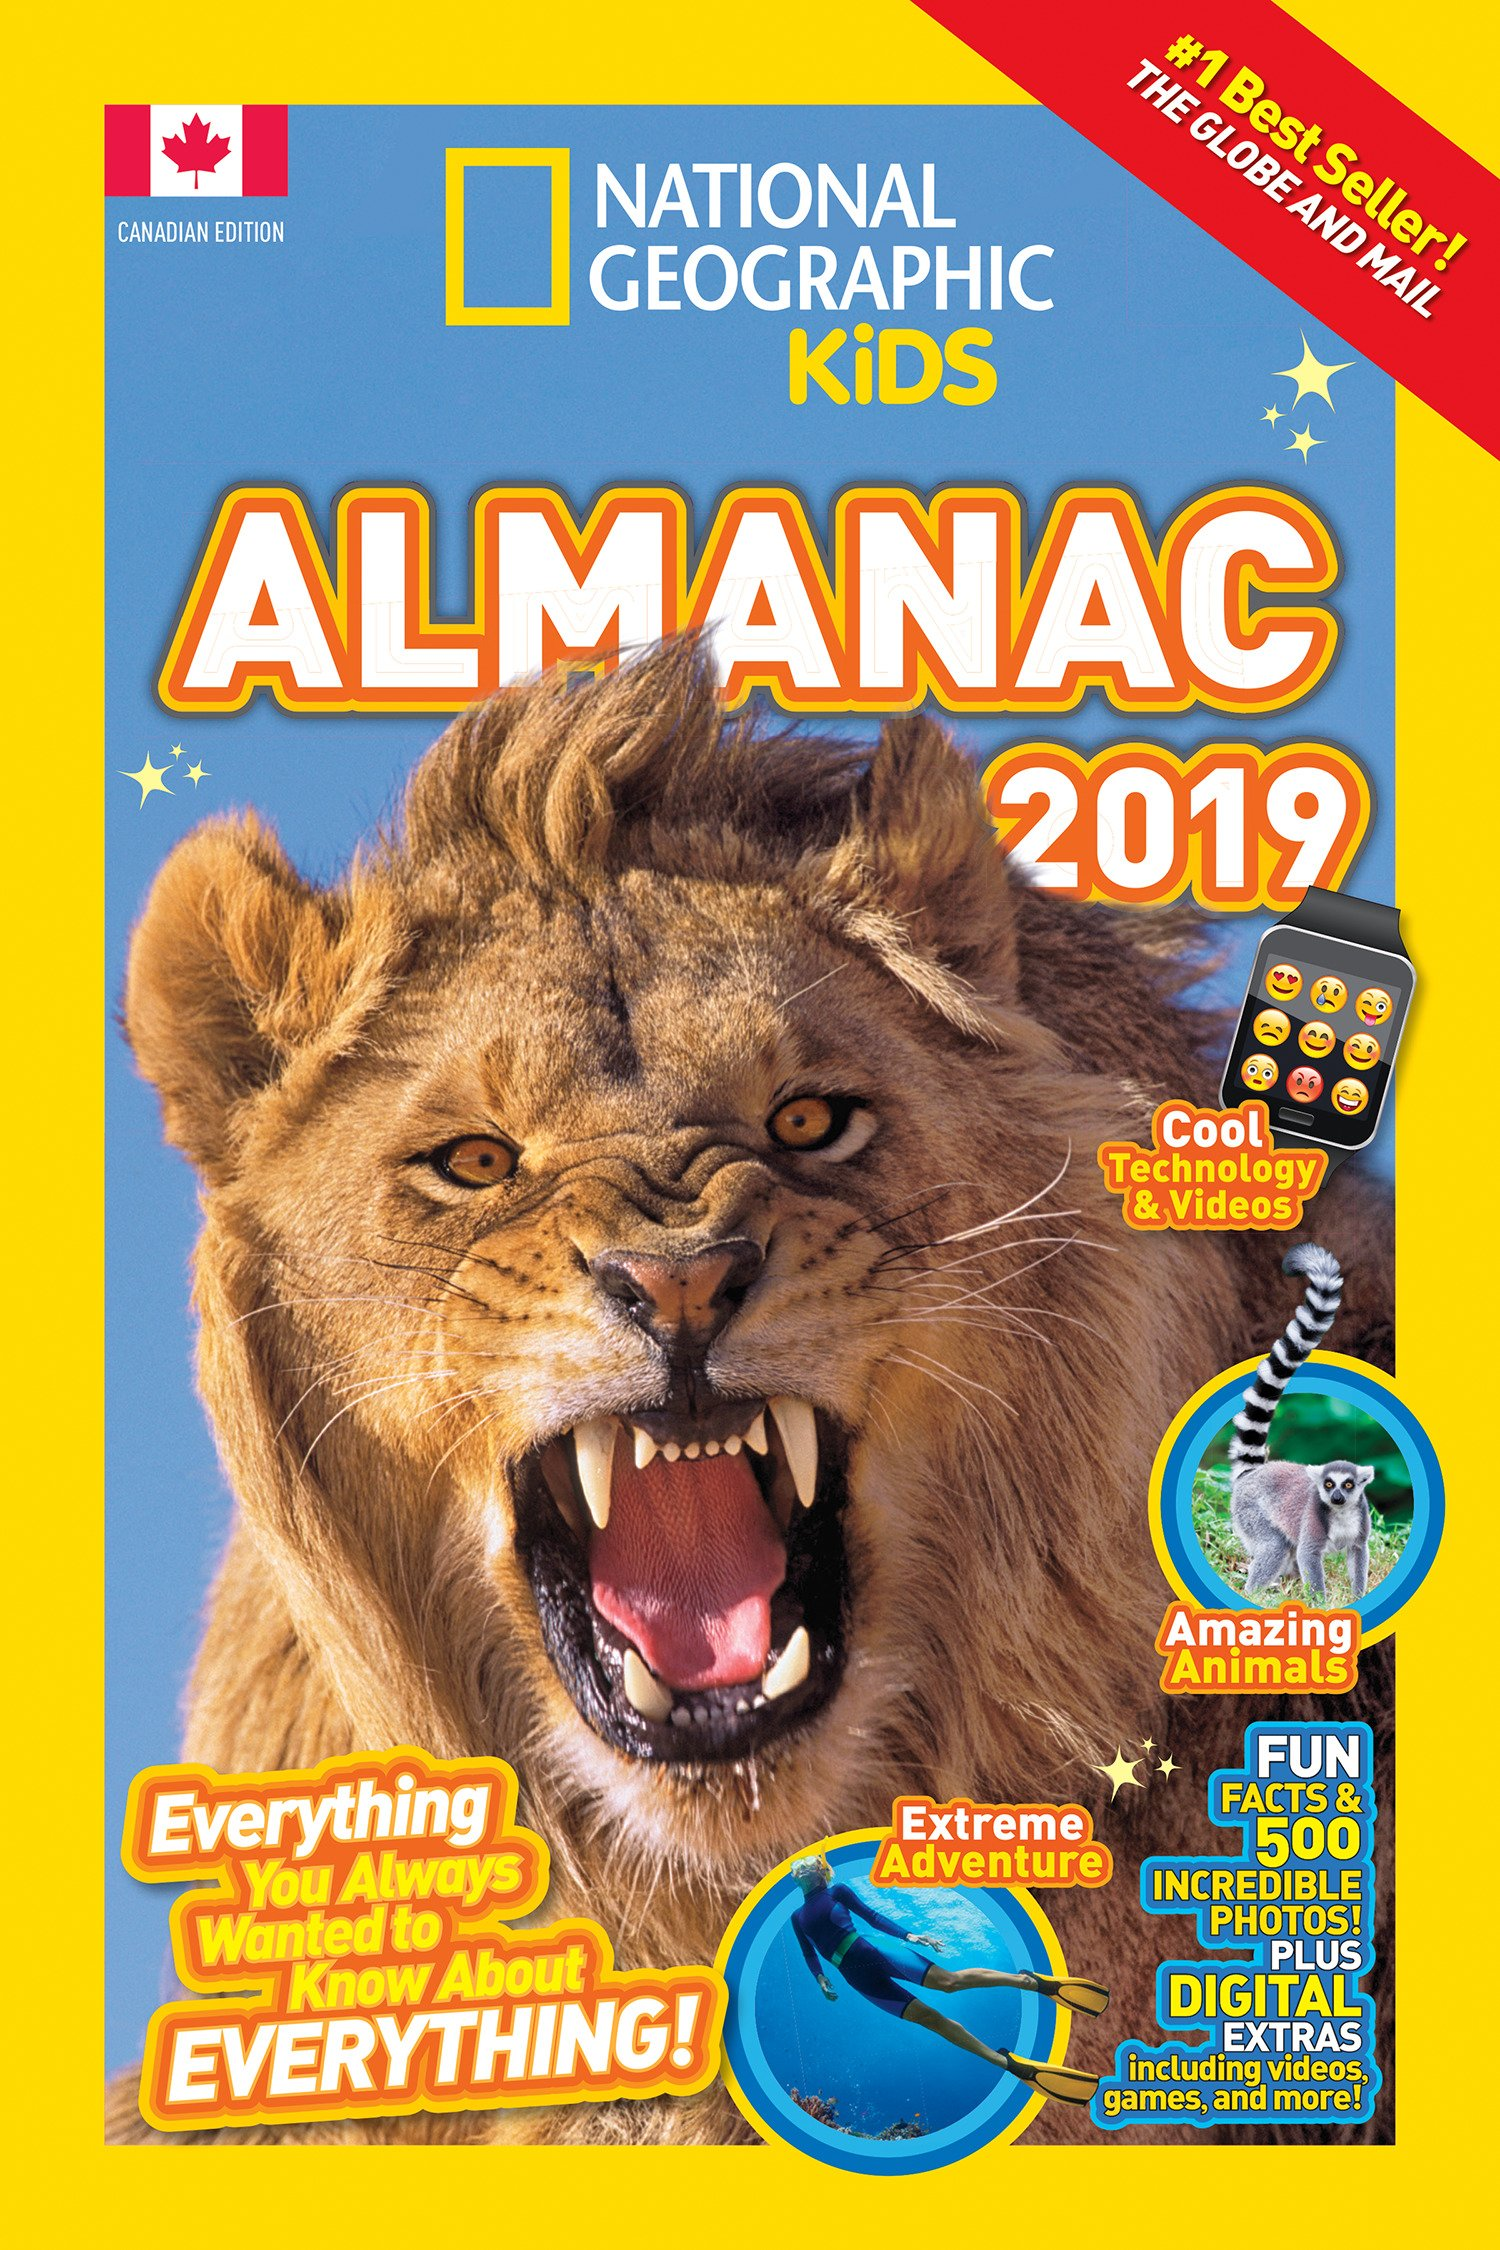 National Geographic Kids Almanac 2019, Canadian Edition (National Geographic Almanacs) ebook